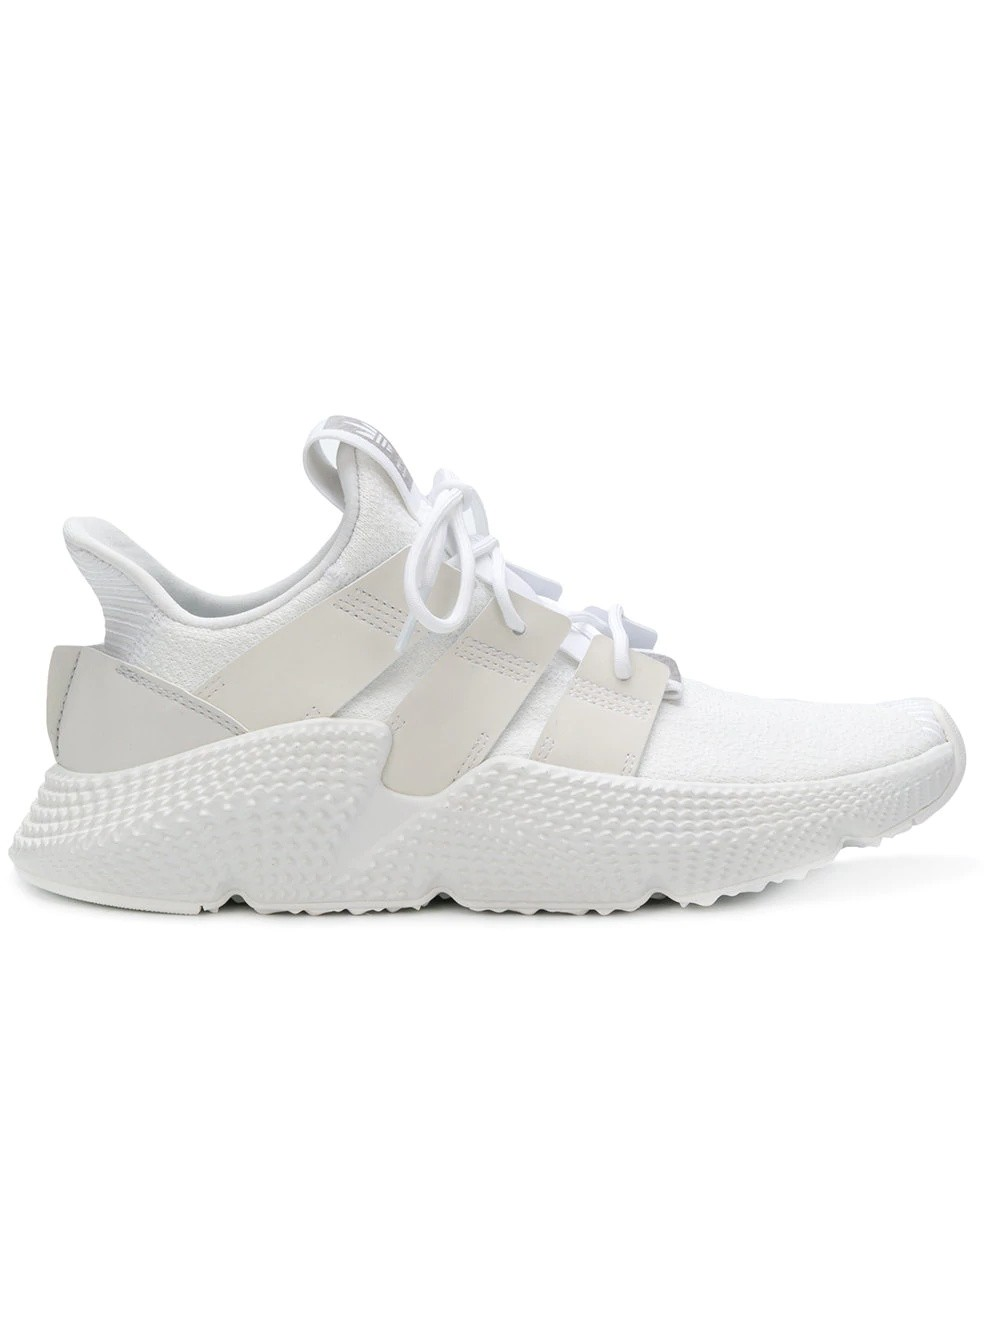 Adidas Originals Prophere | Blanche | Sneakers | B37454